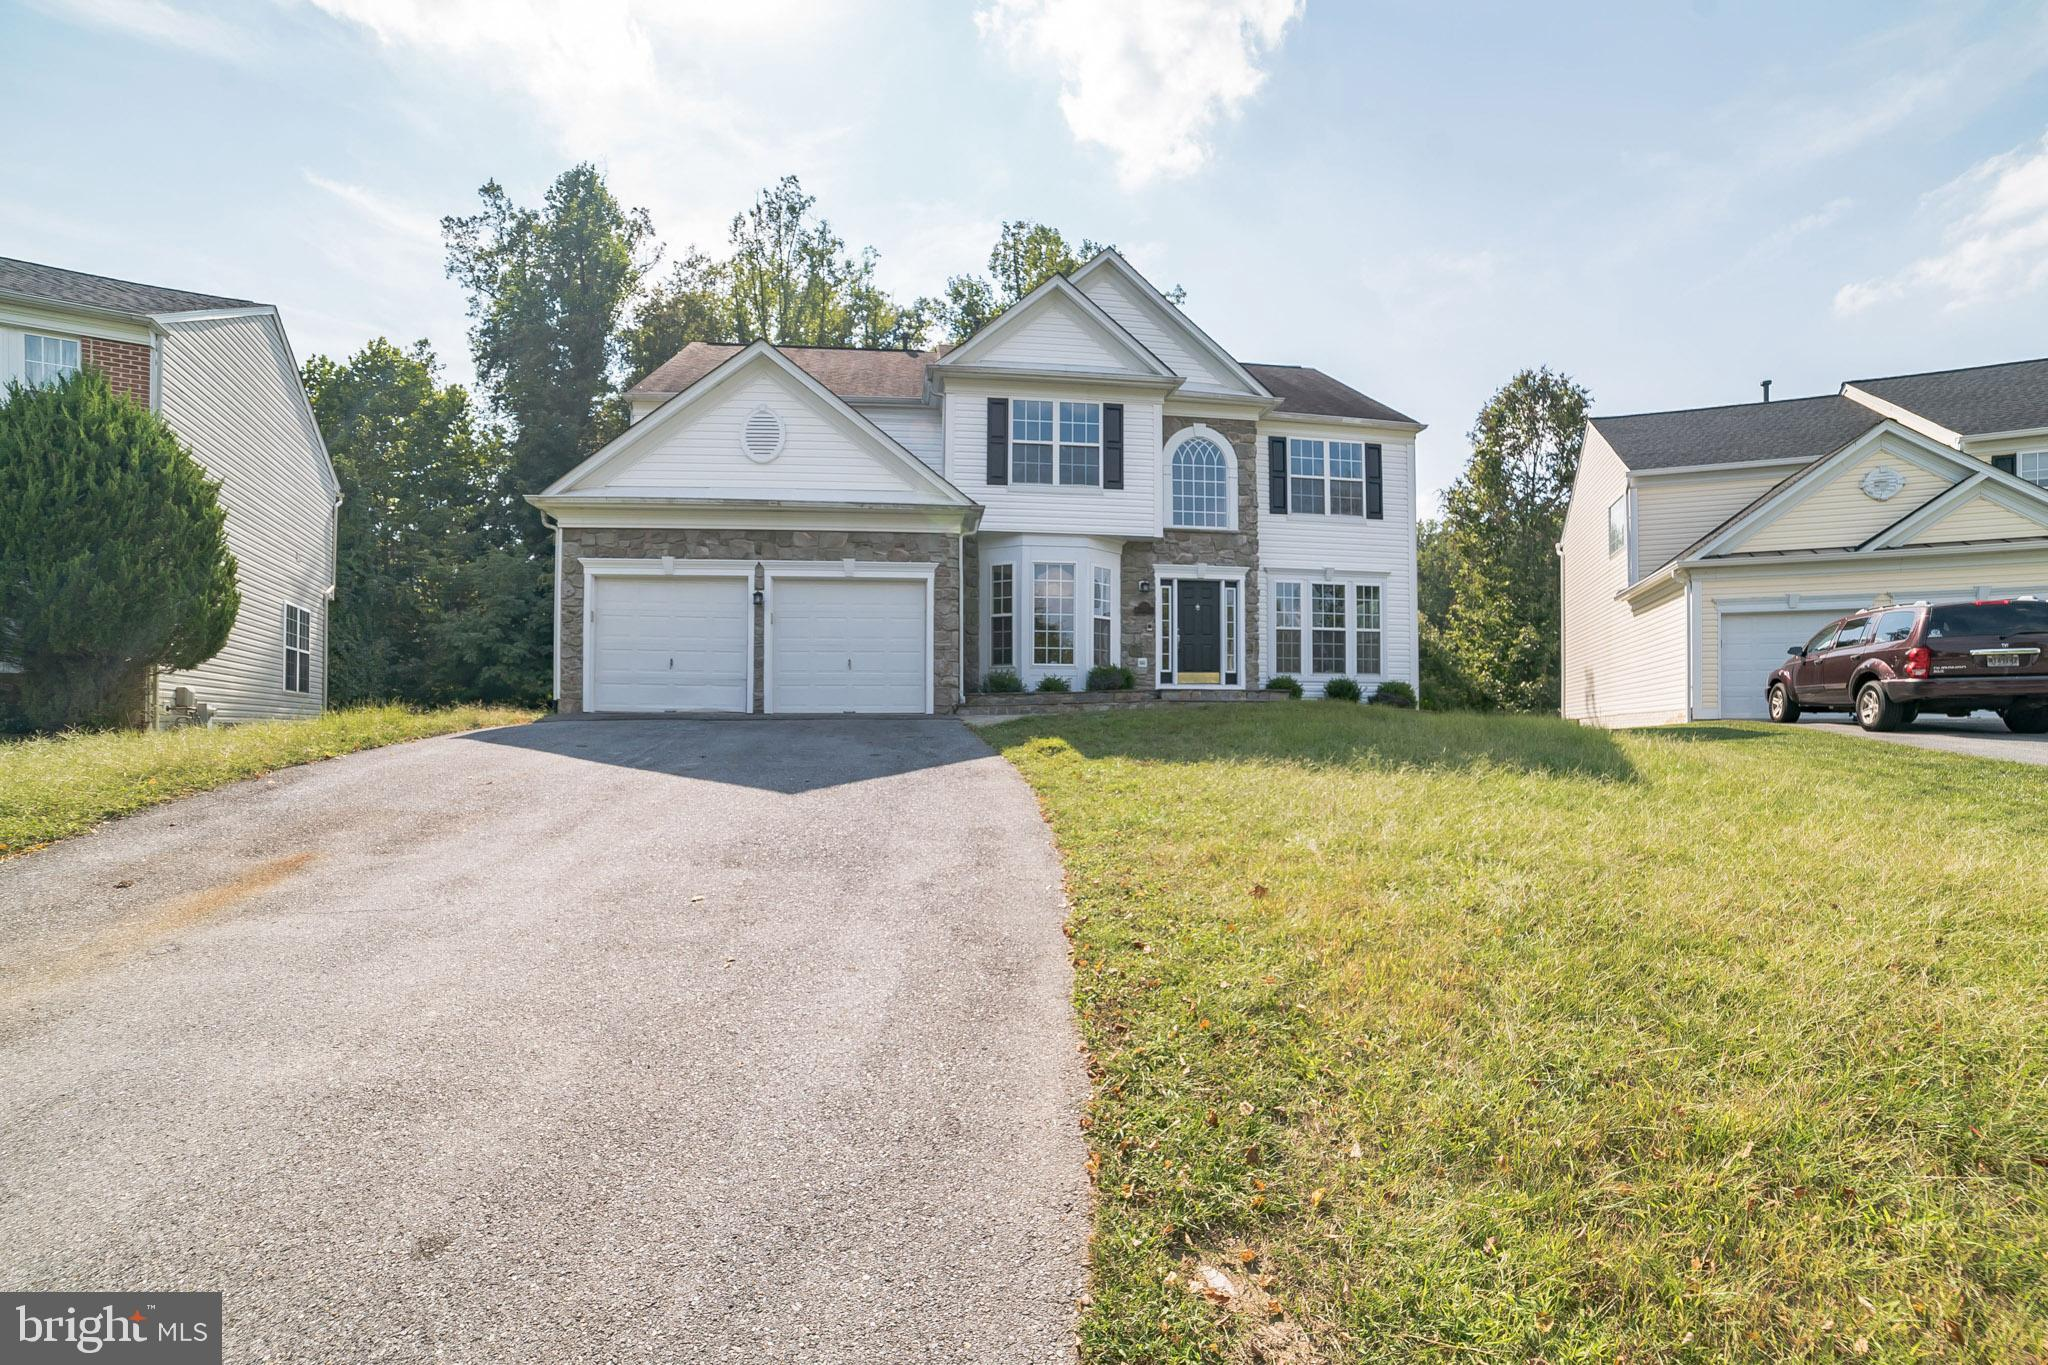 Welcome home to this fully updated stone front colonial beauty with x5bedrooms, 3.5 bathrooms and ov